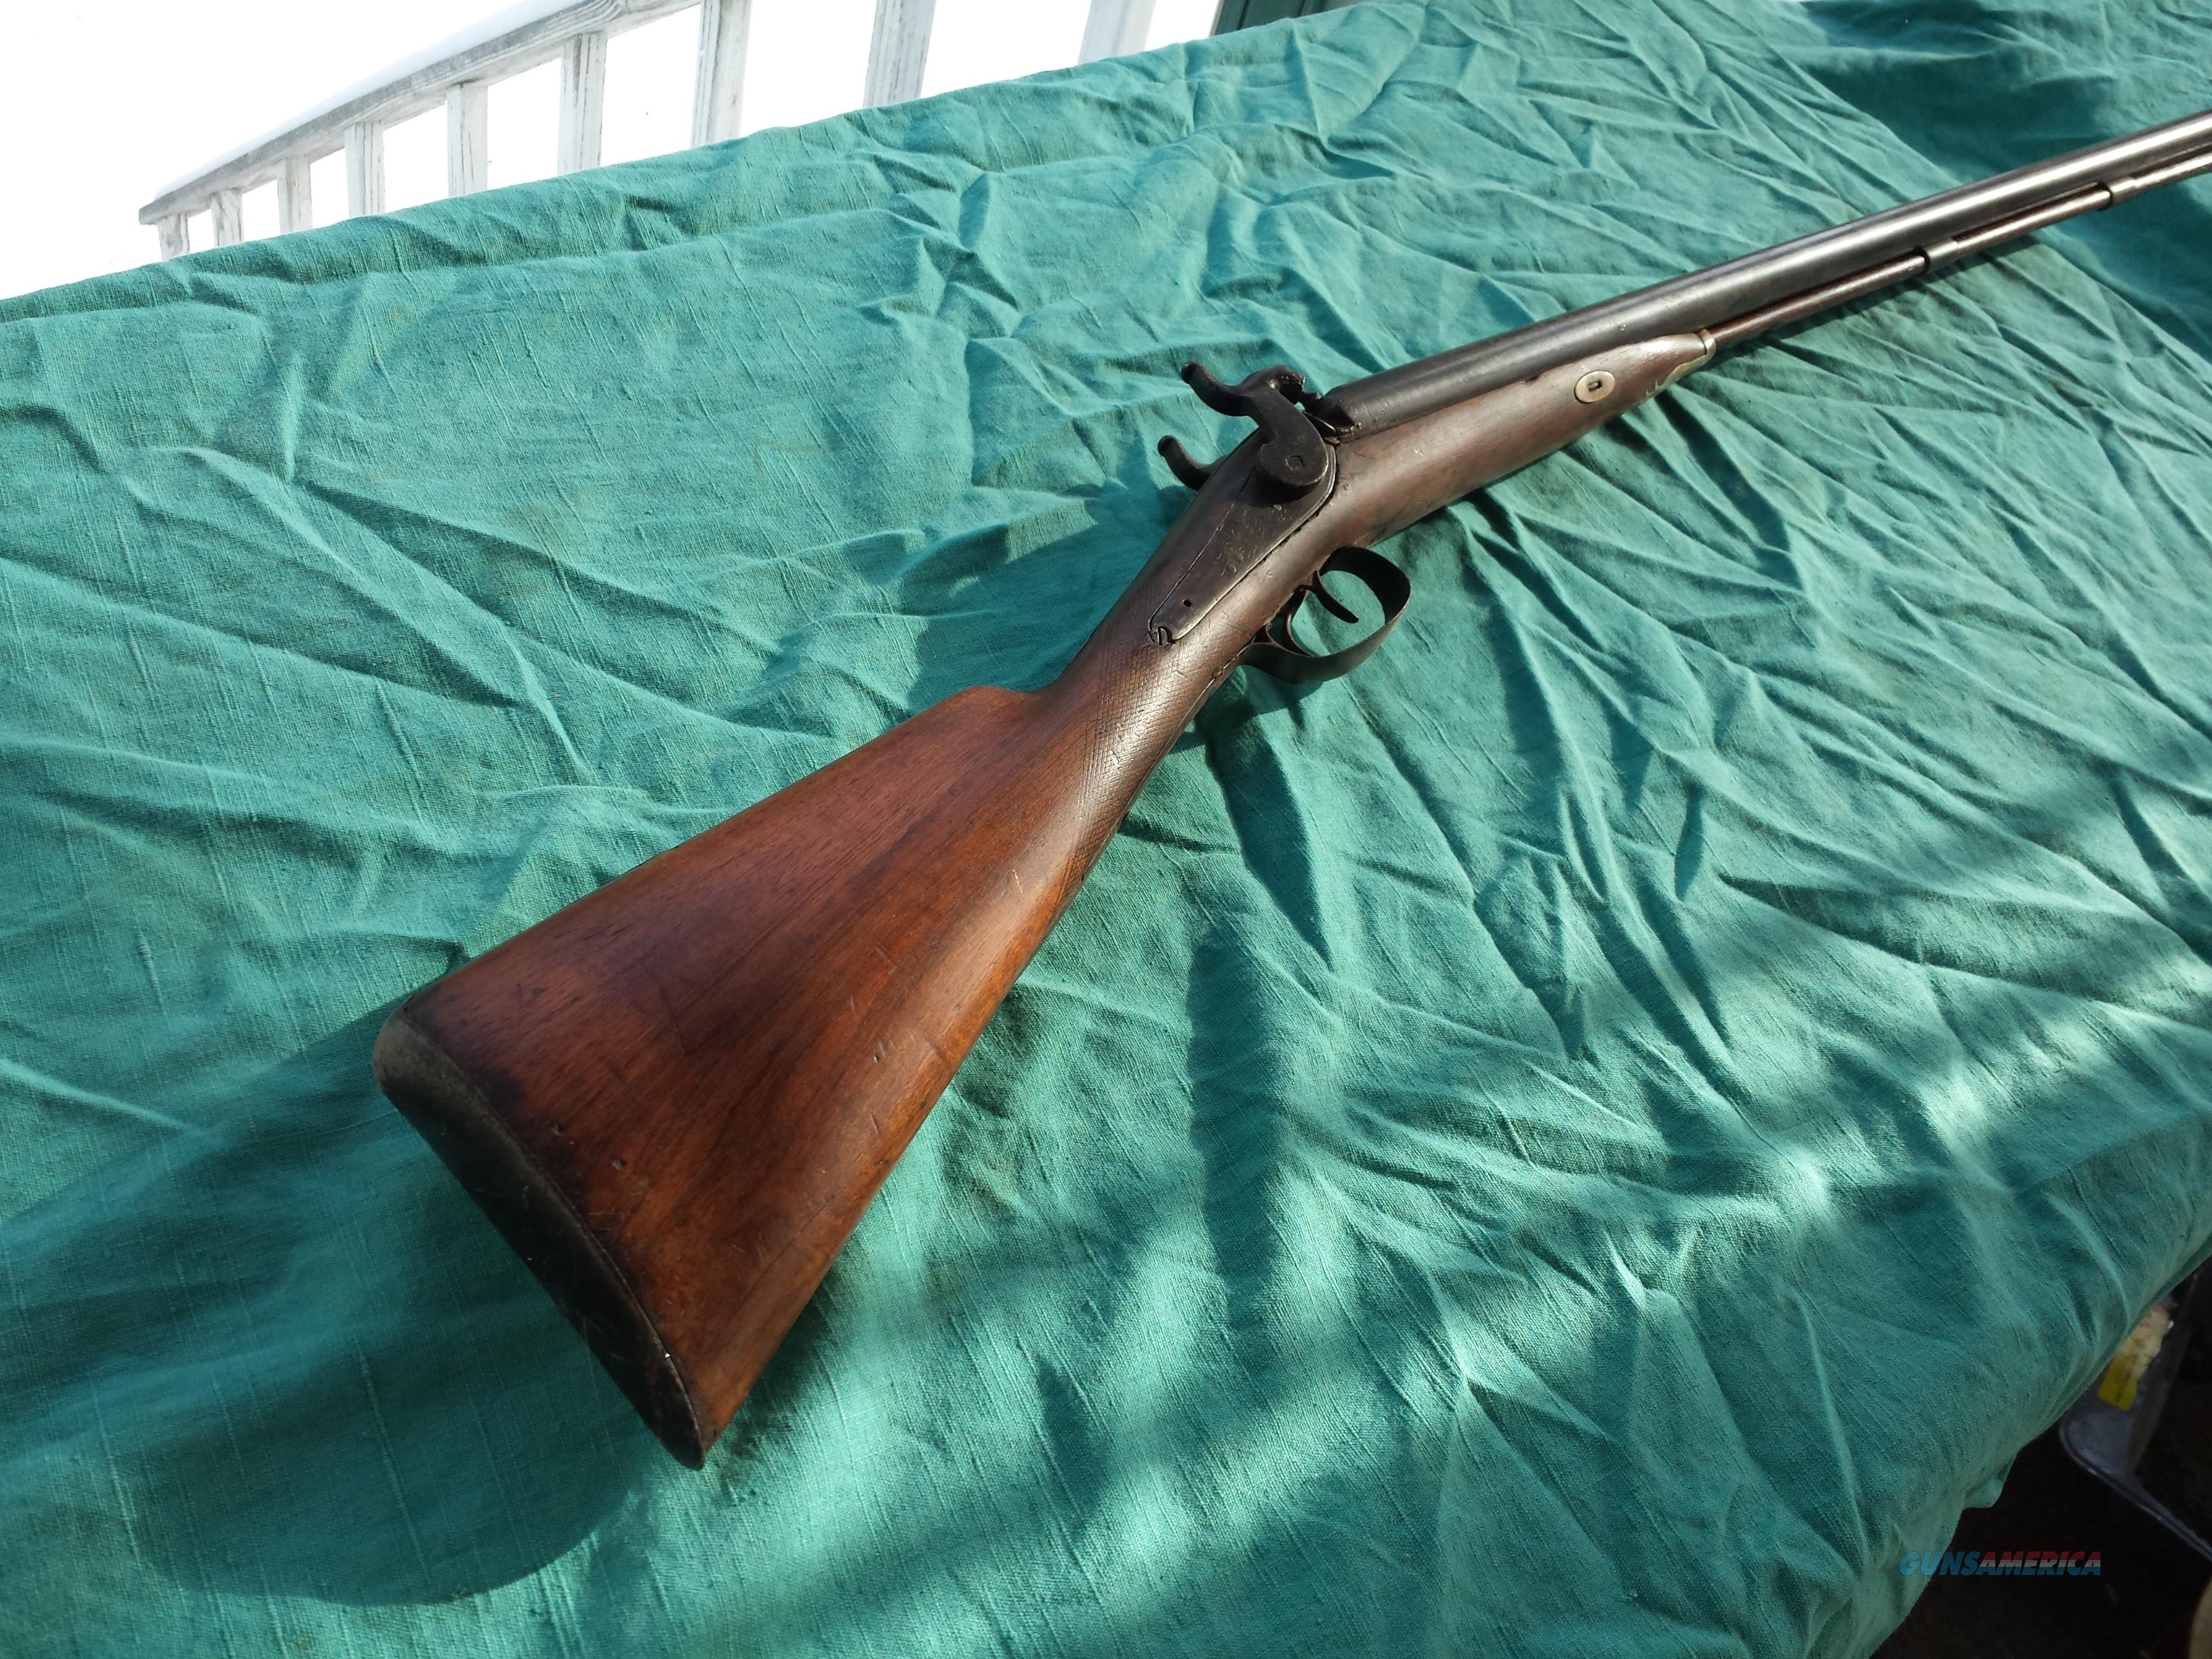 MUZZLE-LOADER 12GA  1850 DOUBLE   Guns > Shotguns > Muzzleloading Pre-1899 Shotguns